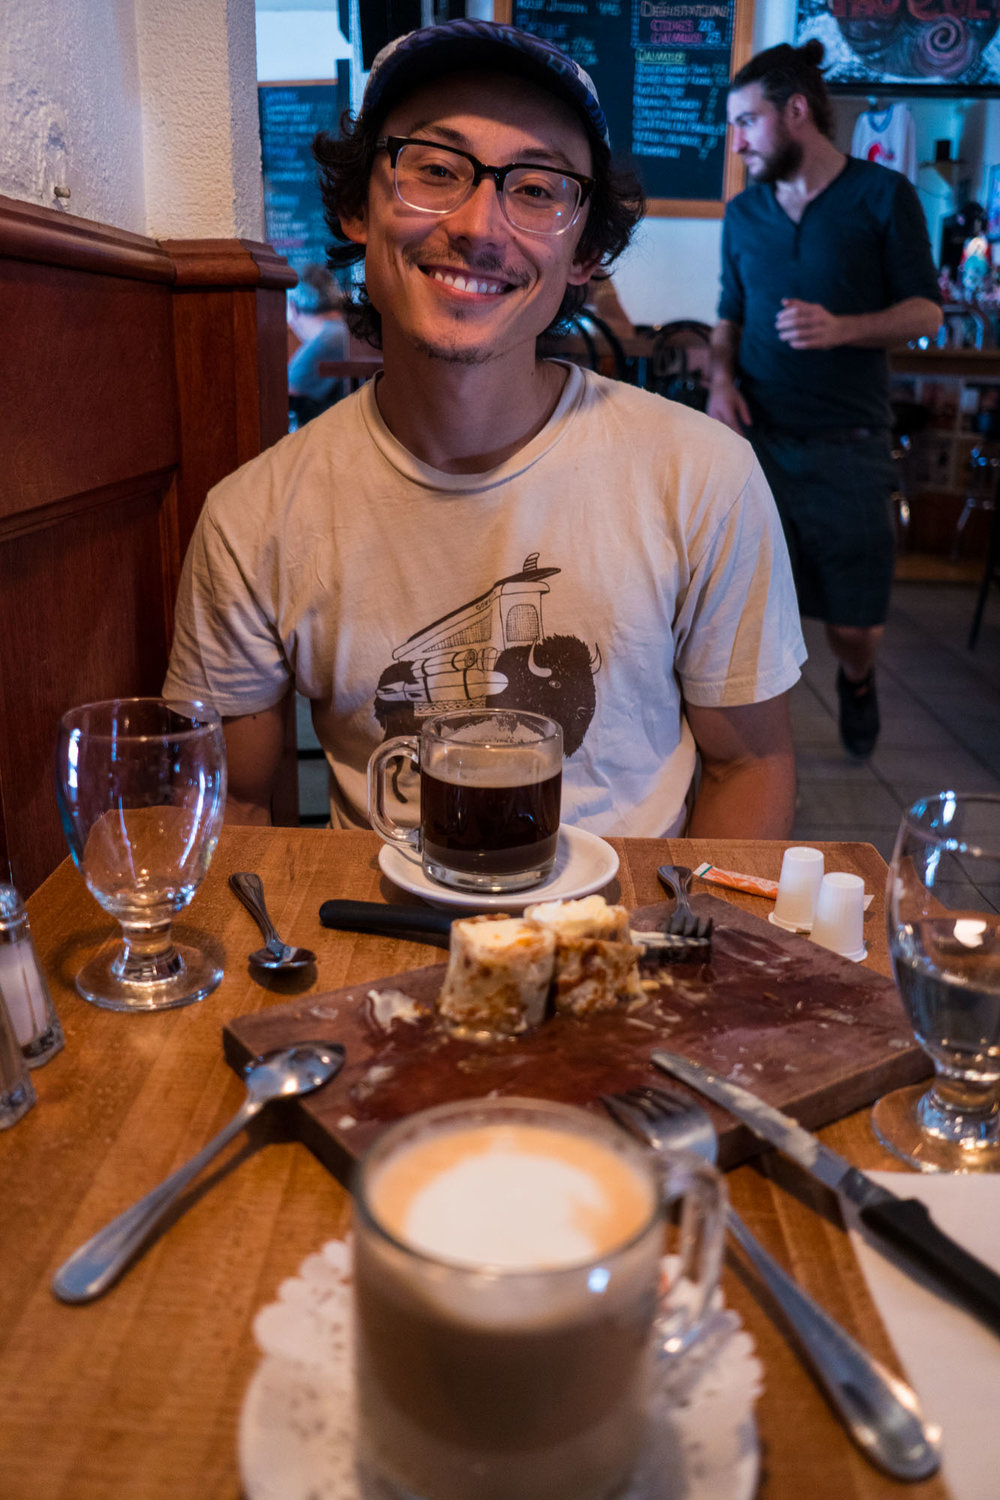 Owen enjoying our first Crepe and Latte in Quebec City